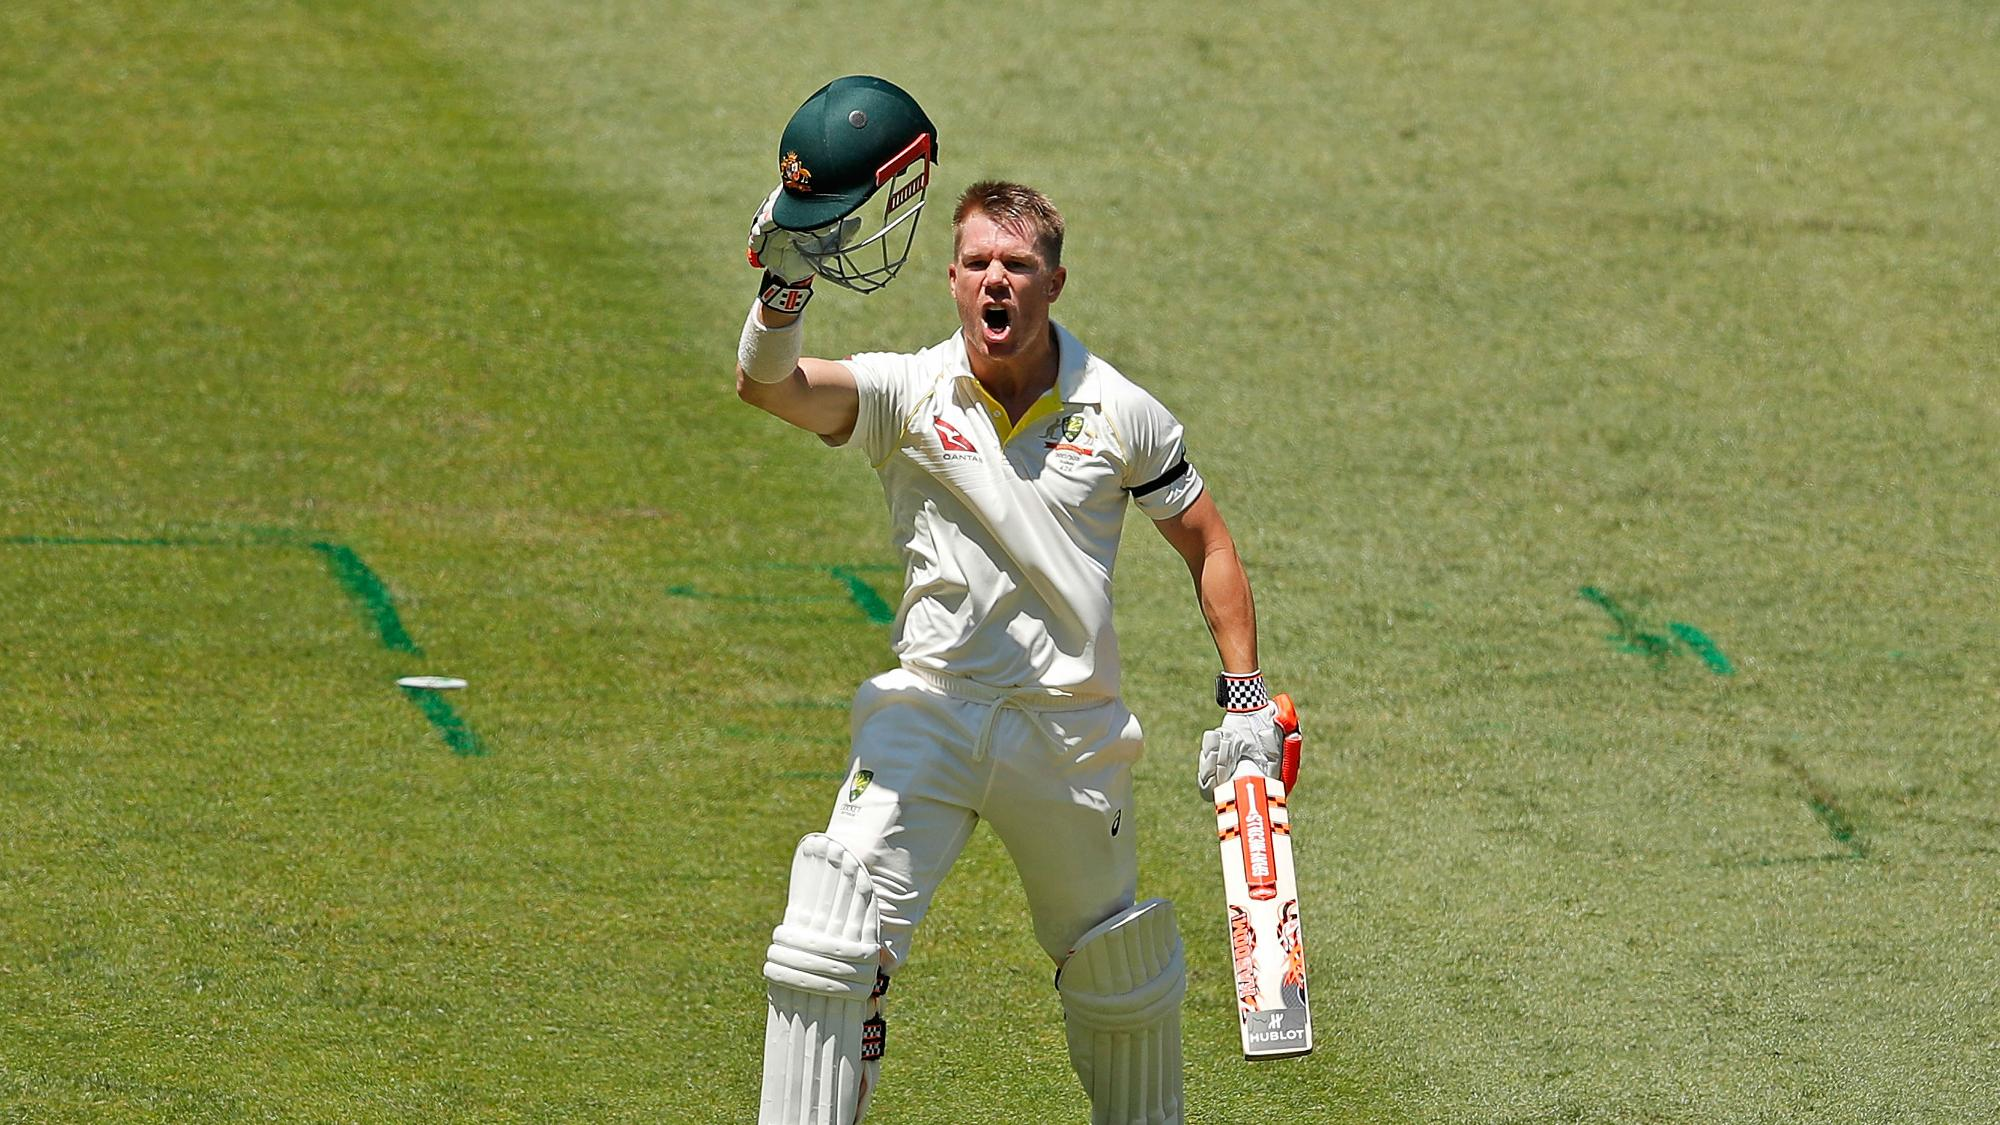 David-Warner-smacked-his-21st-Test-century-to-put-Australia-in-command-on-Day-1